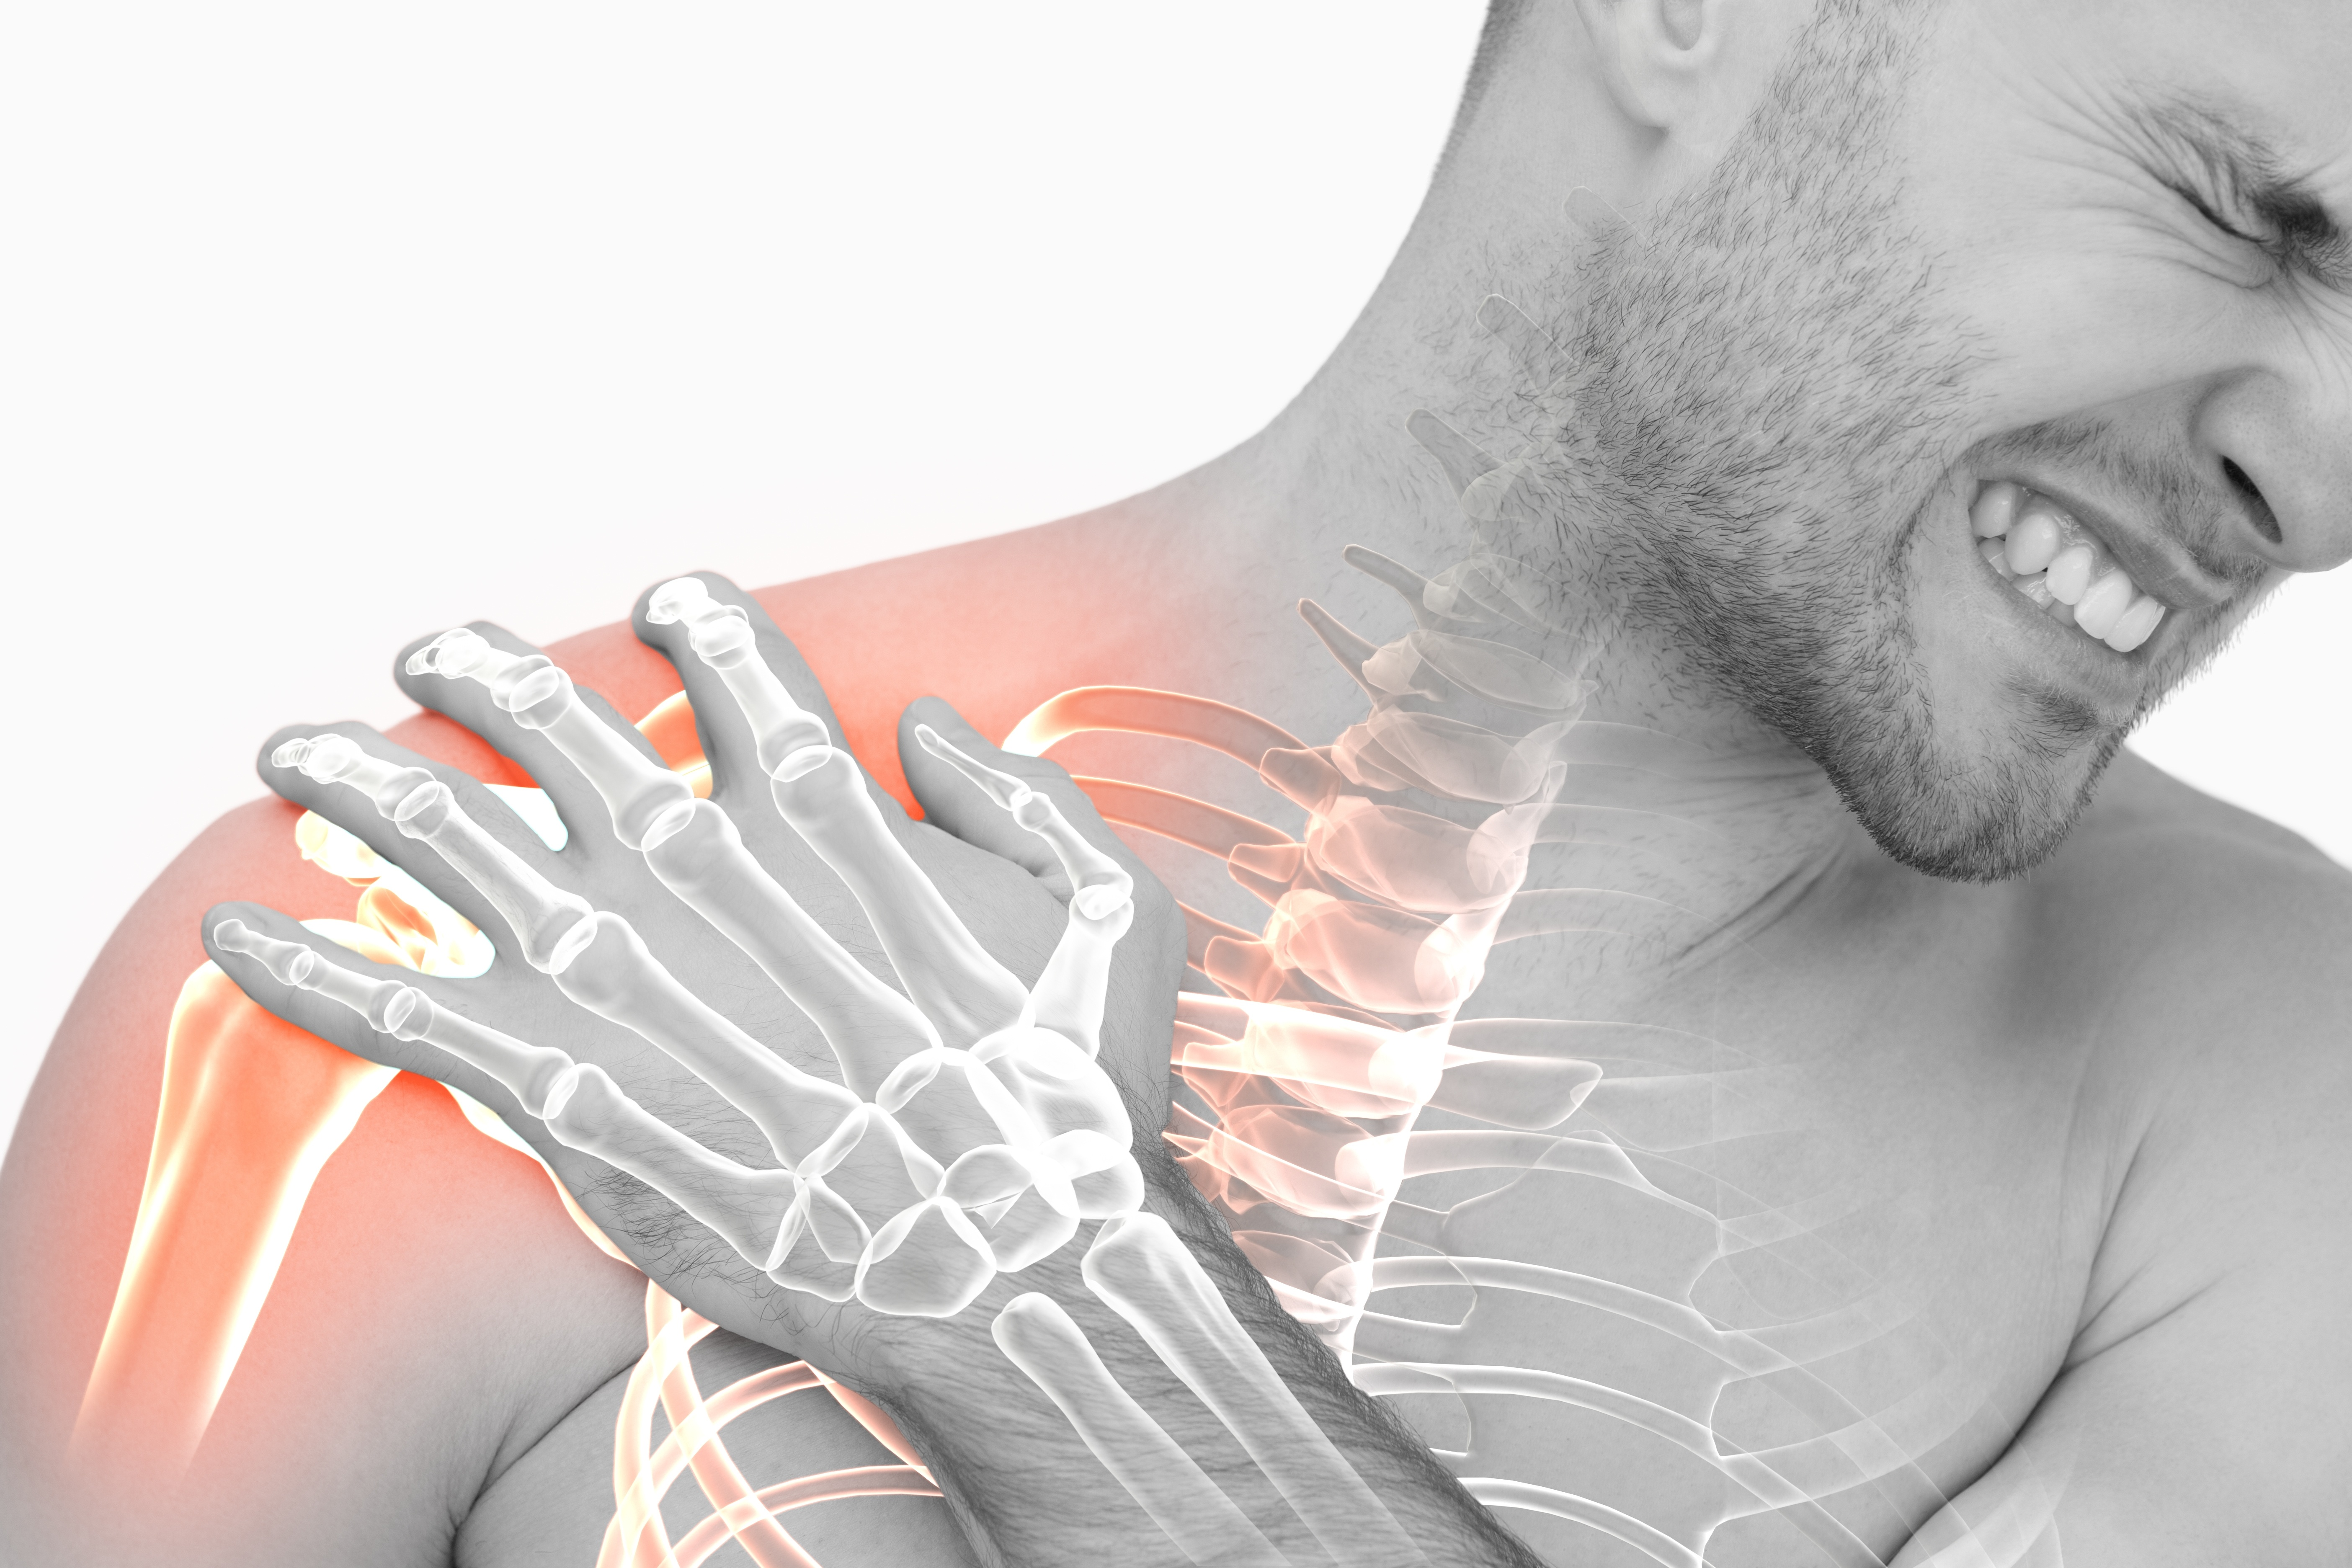 What are the home treatments and medical assistance for pain from your elbow to shoulder? Learn more about latest comprehensive treatments to help you in elbow to shoulder pain. Read More!